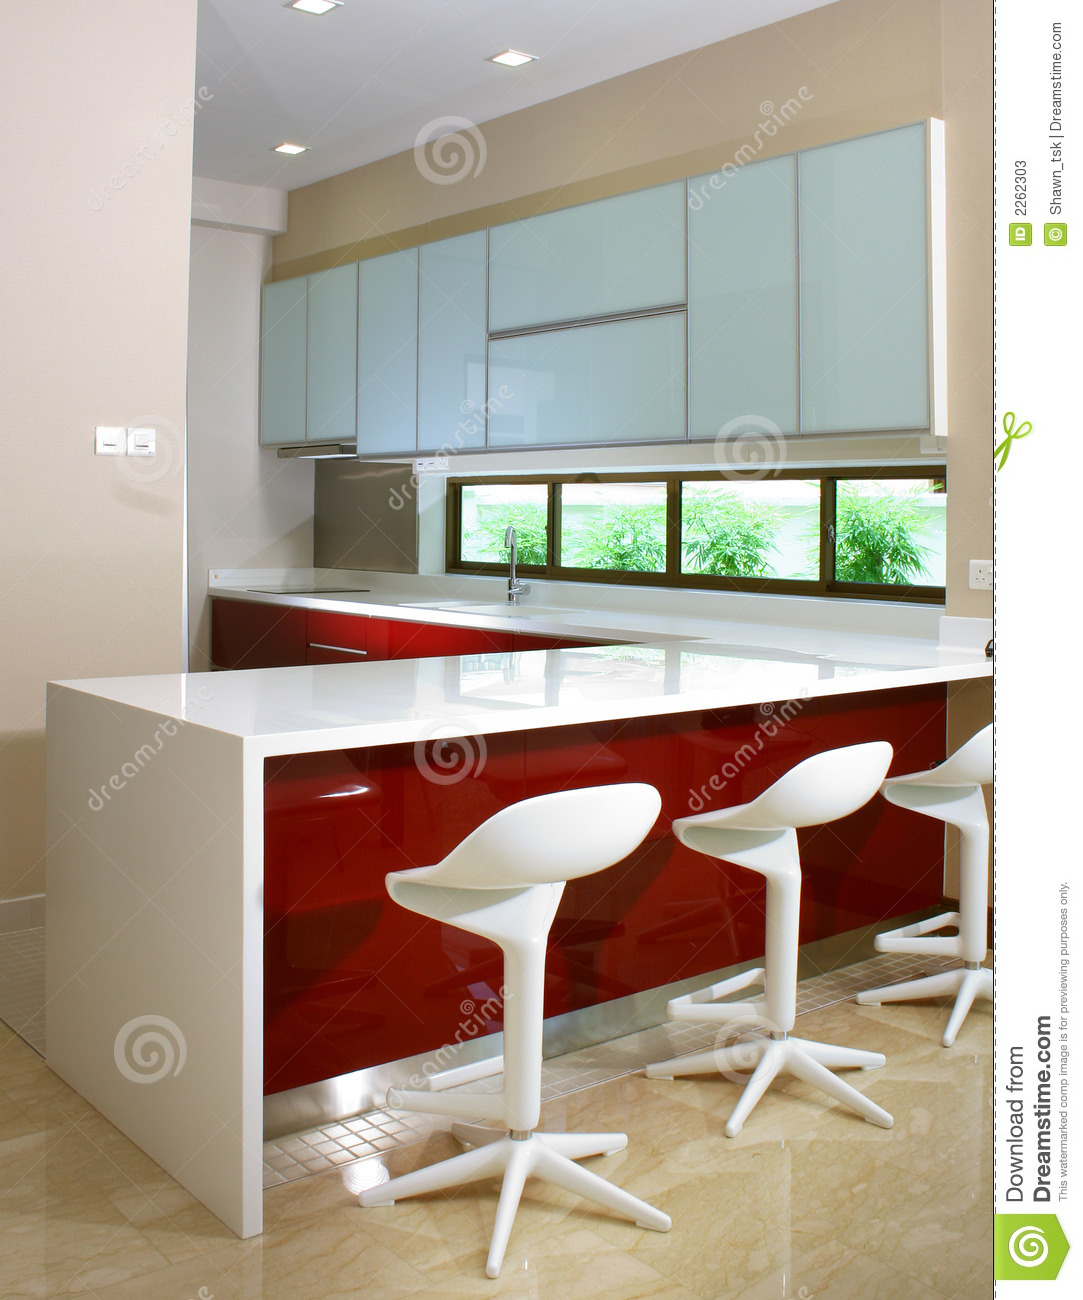 Wonderful Kitchen And Bar Counter